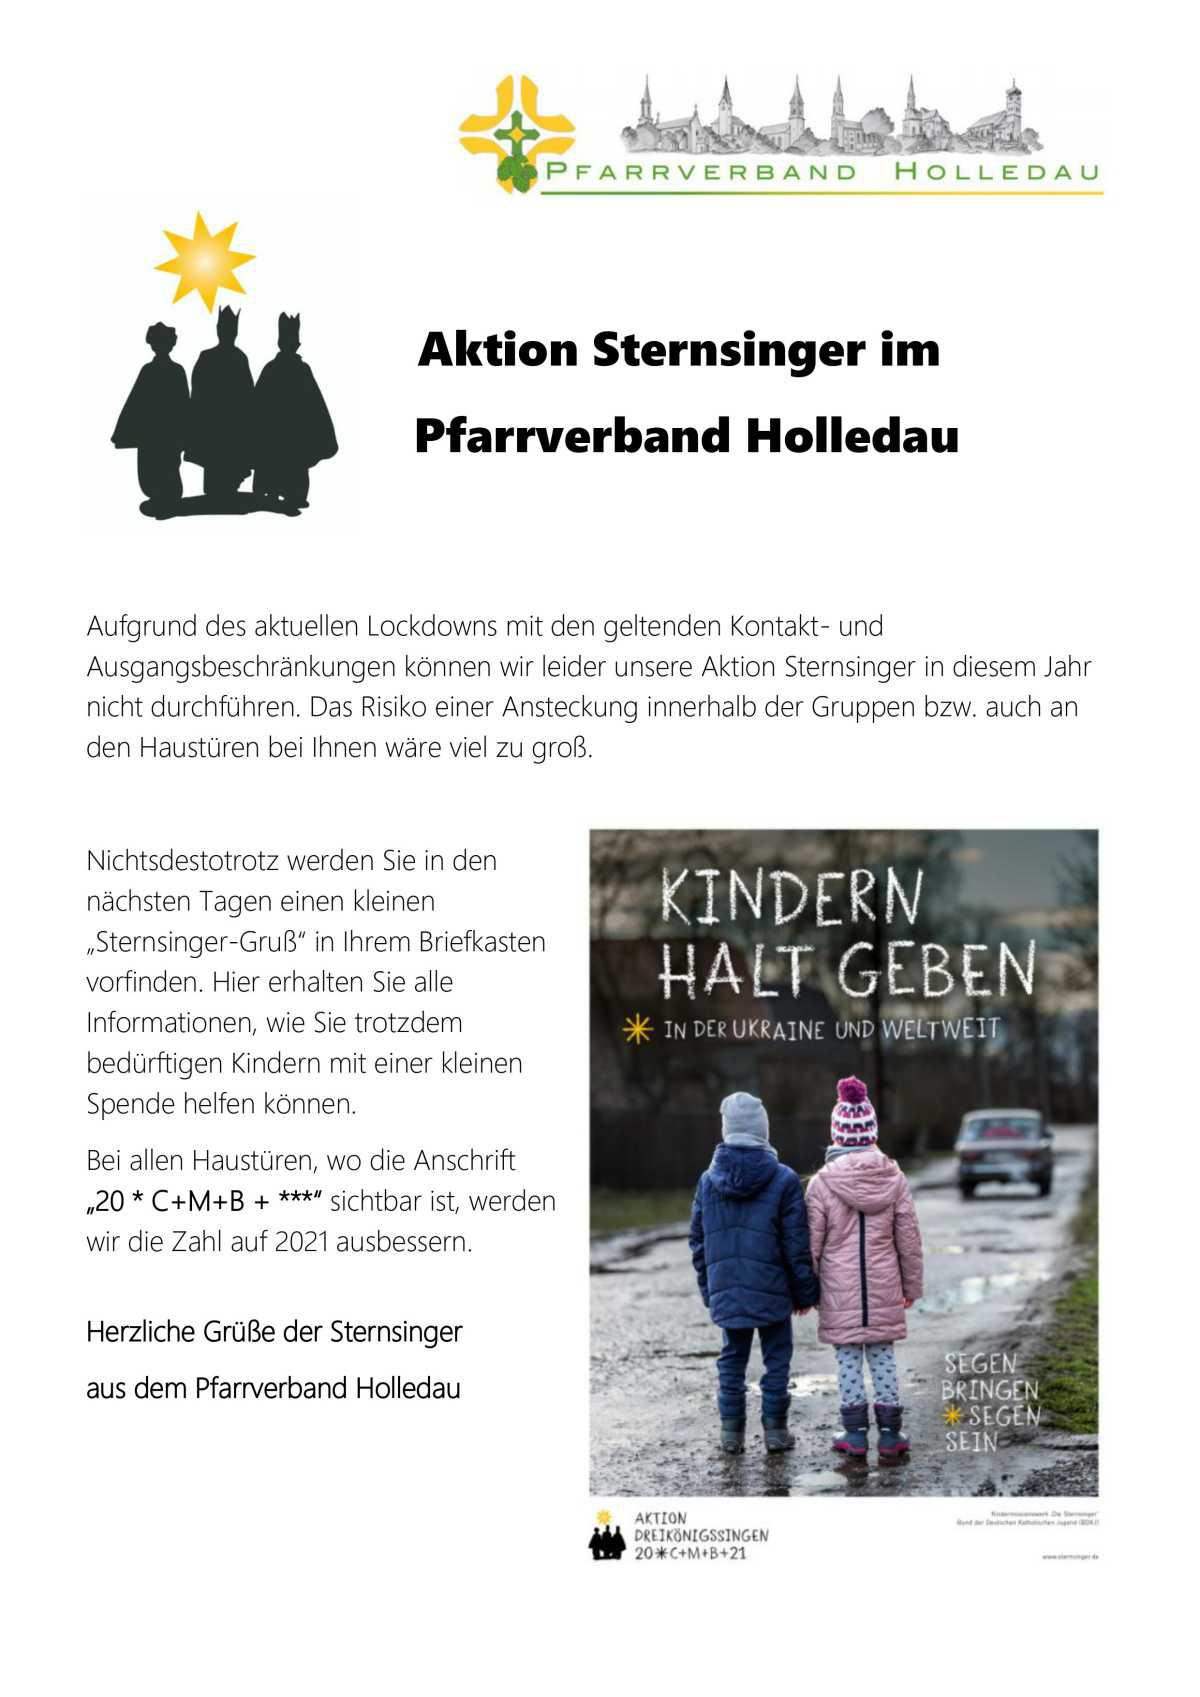 Aktion Sternsinger im Pfarrverband Holledau